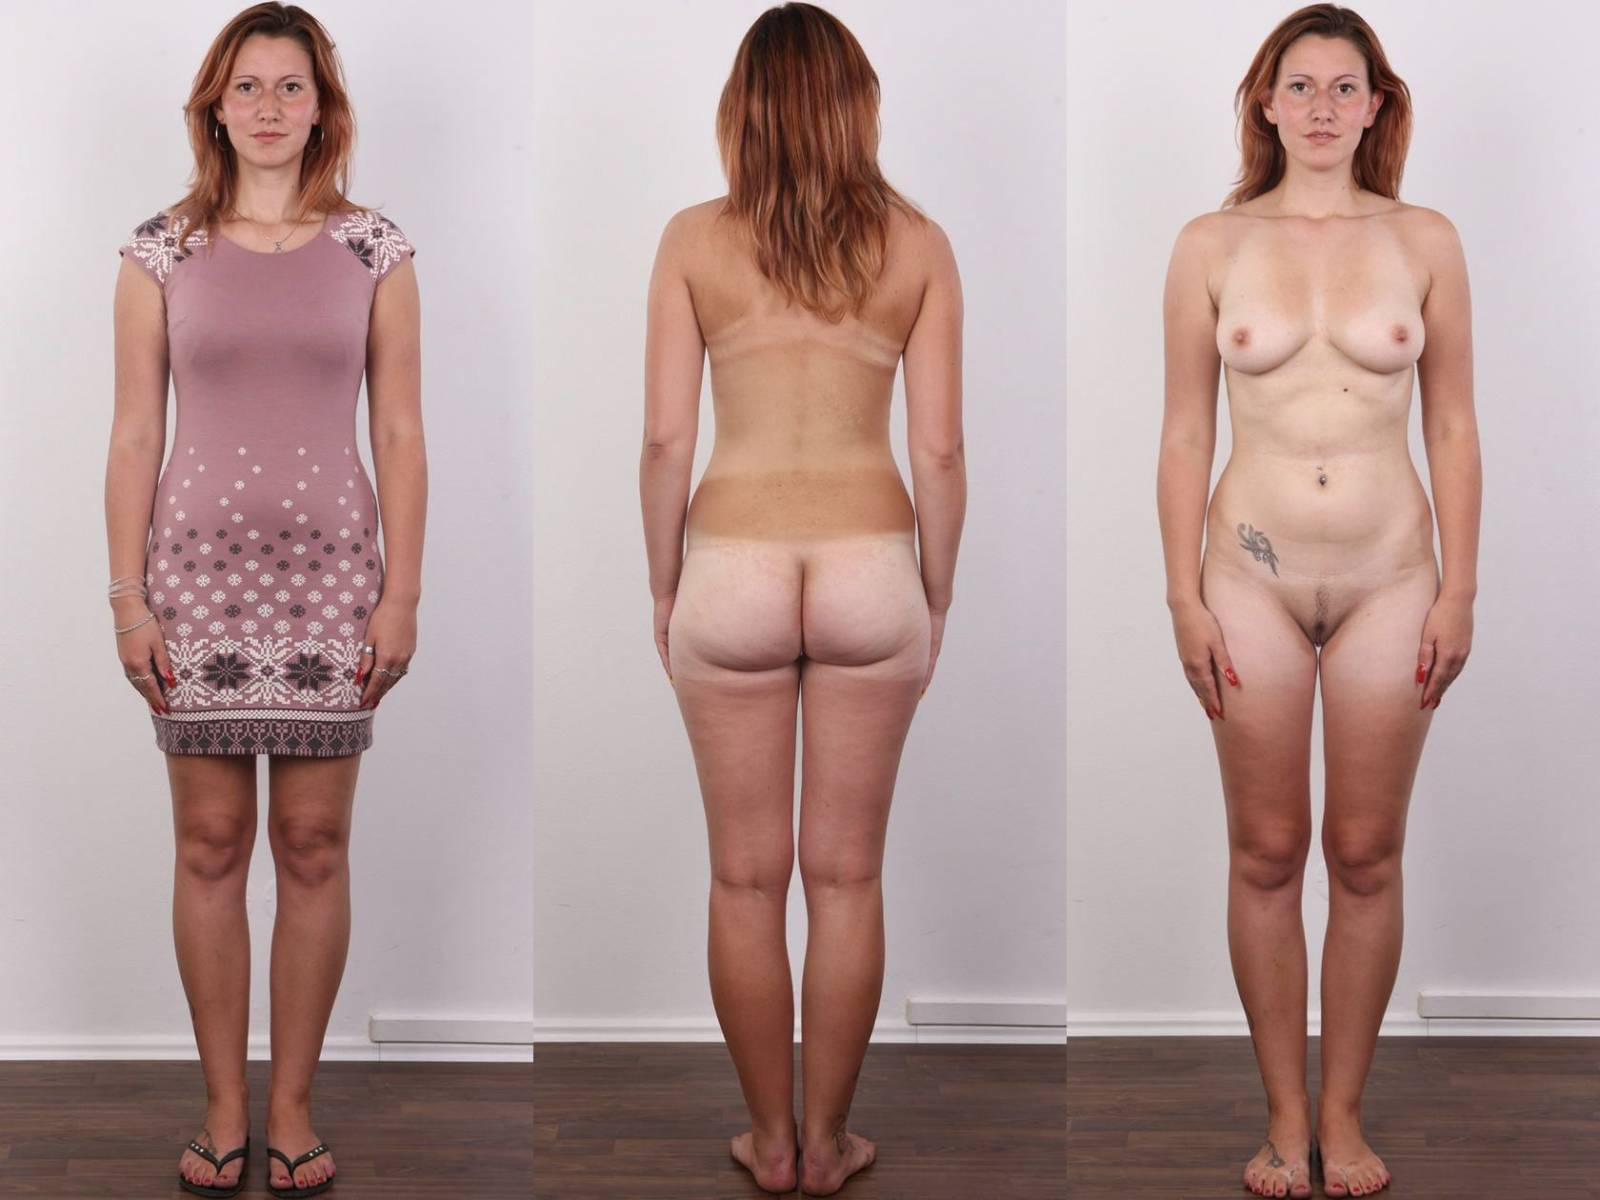 Clothed and nude